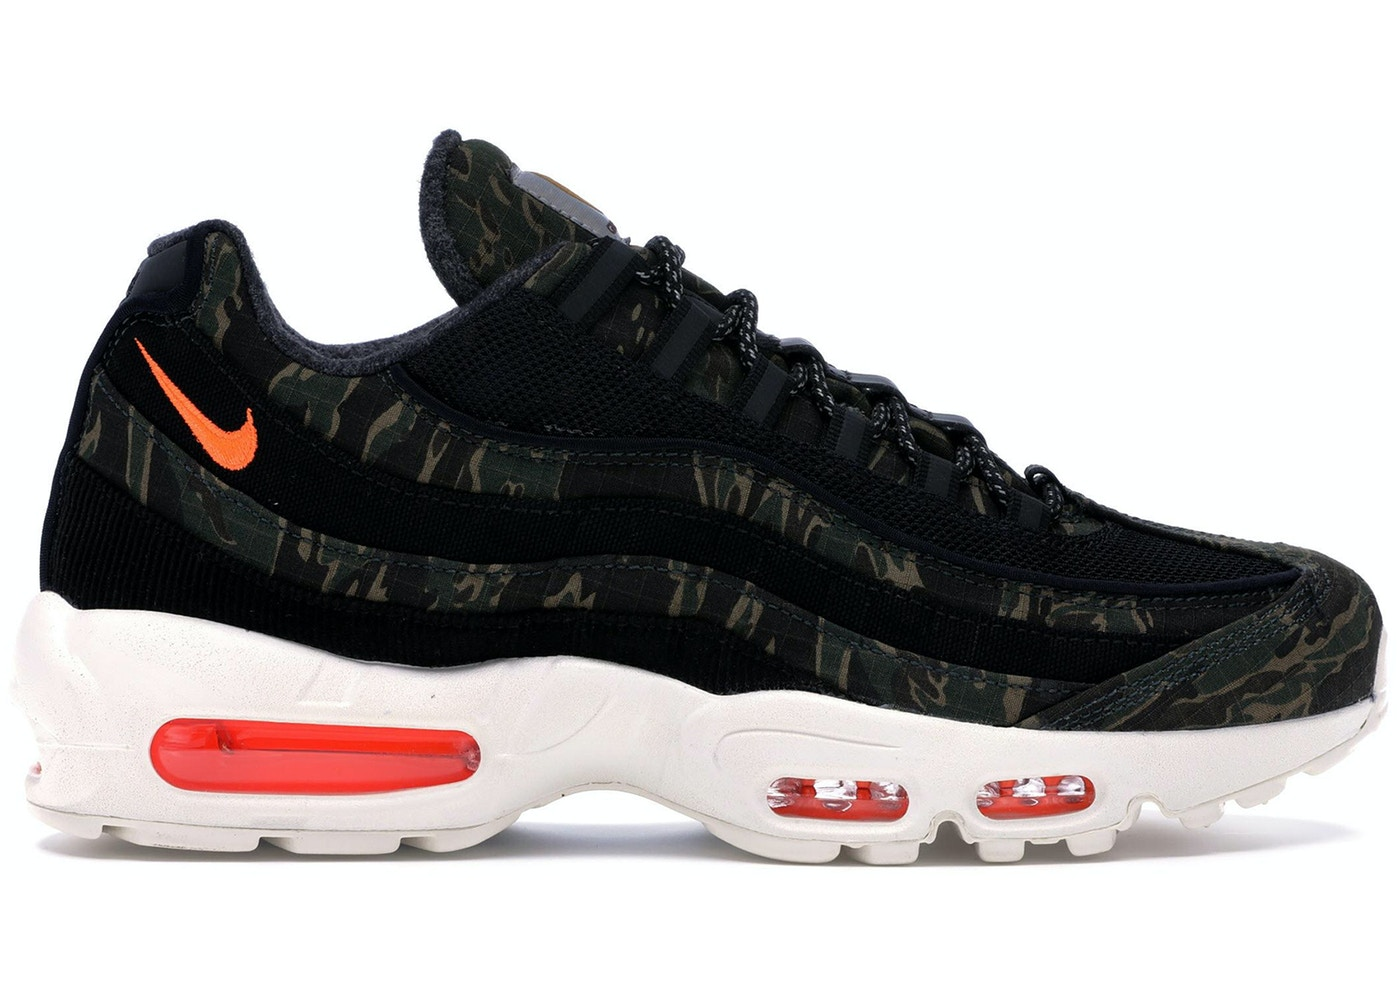 4b4fa33ad0 Buy Nike Air Max 95 Shoes & Deadstock Sneakers